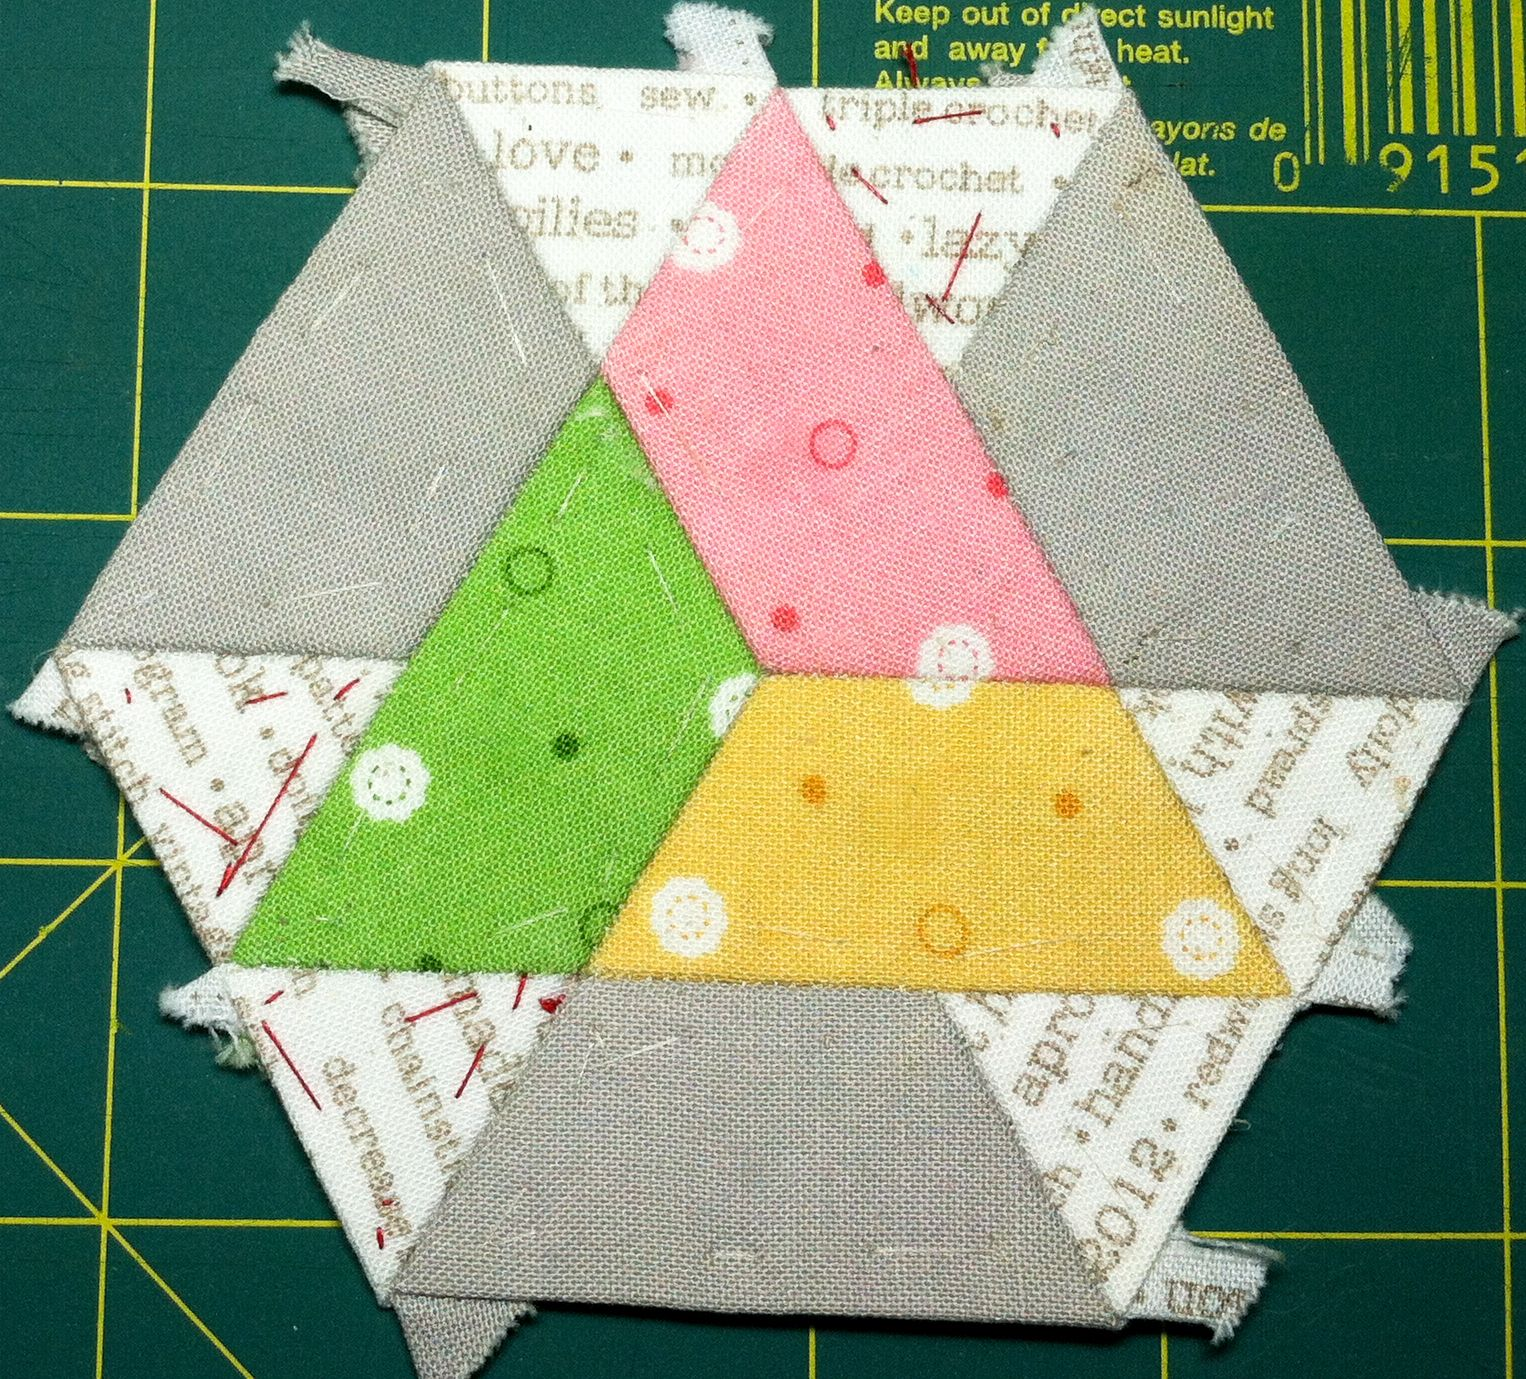 Kristin's Quilts and Stuff: Tips on EPP, Basting Triangles ... : quilting triangles tips - Adamdwight.com